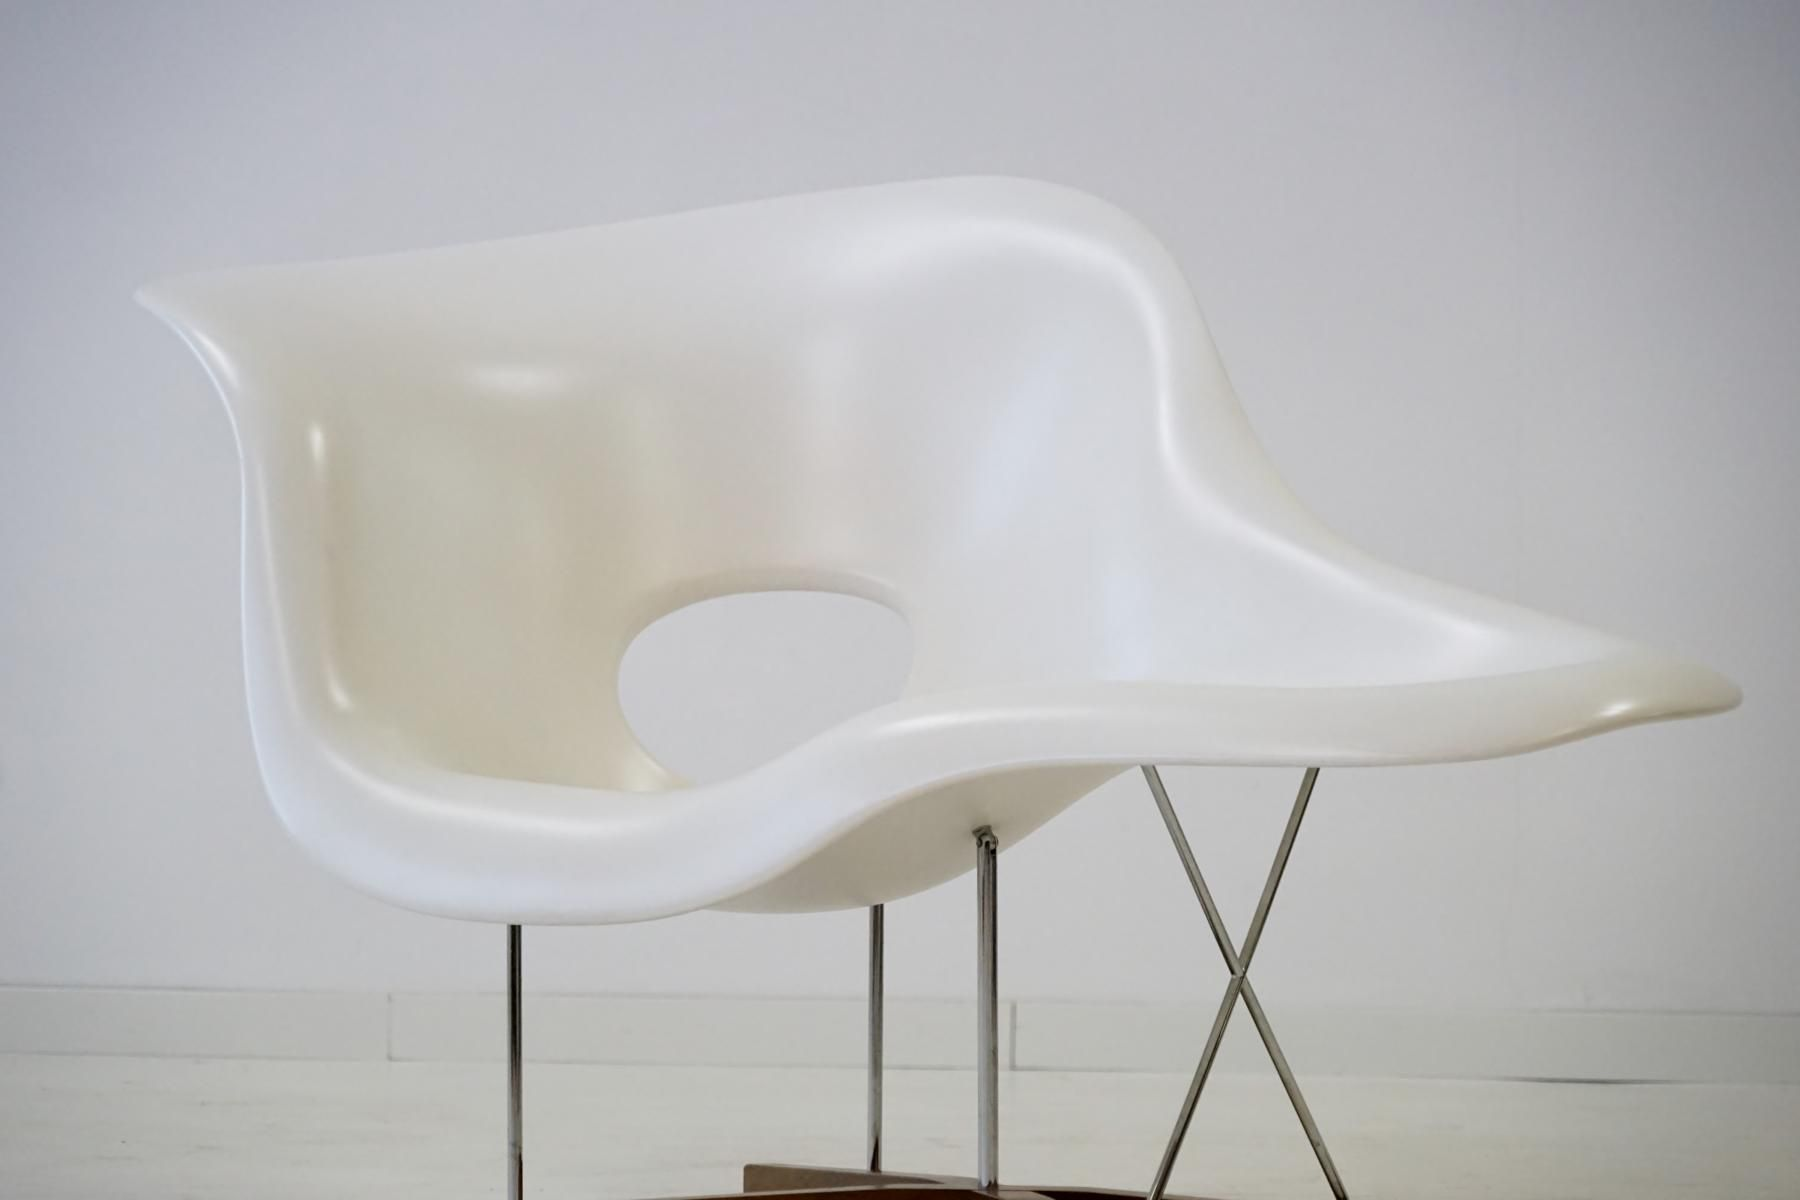 Vintage la chaise by eames for vitra for sale at pamono for Chaise eames style